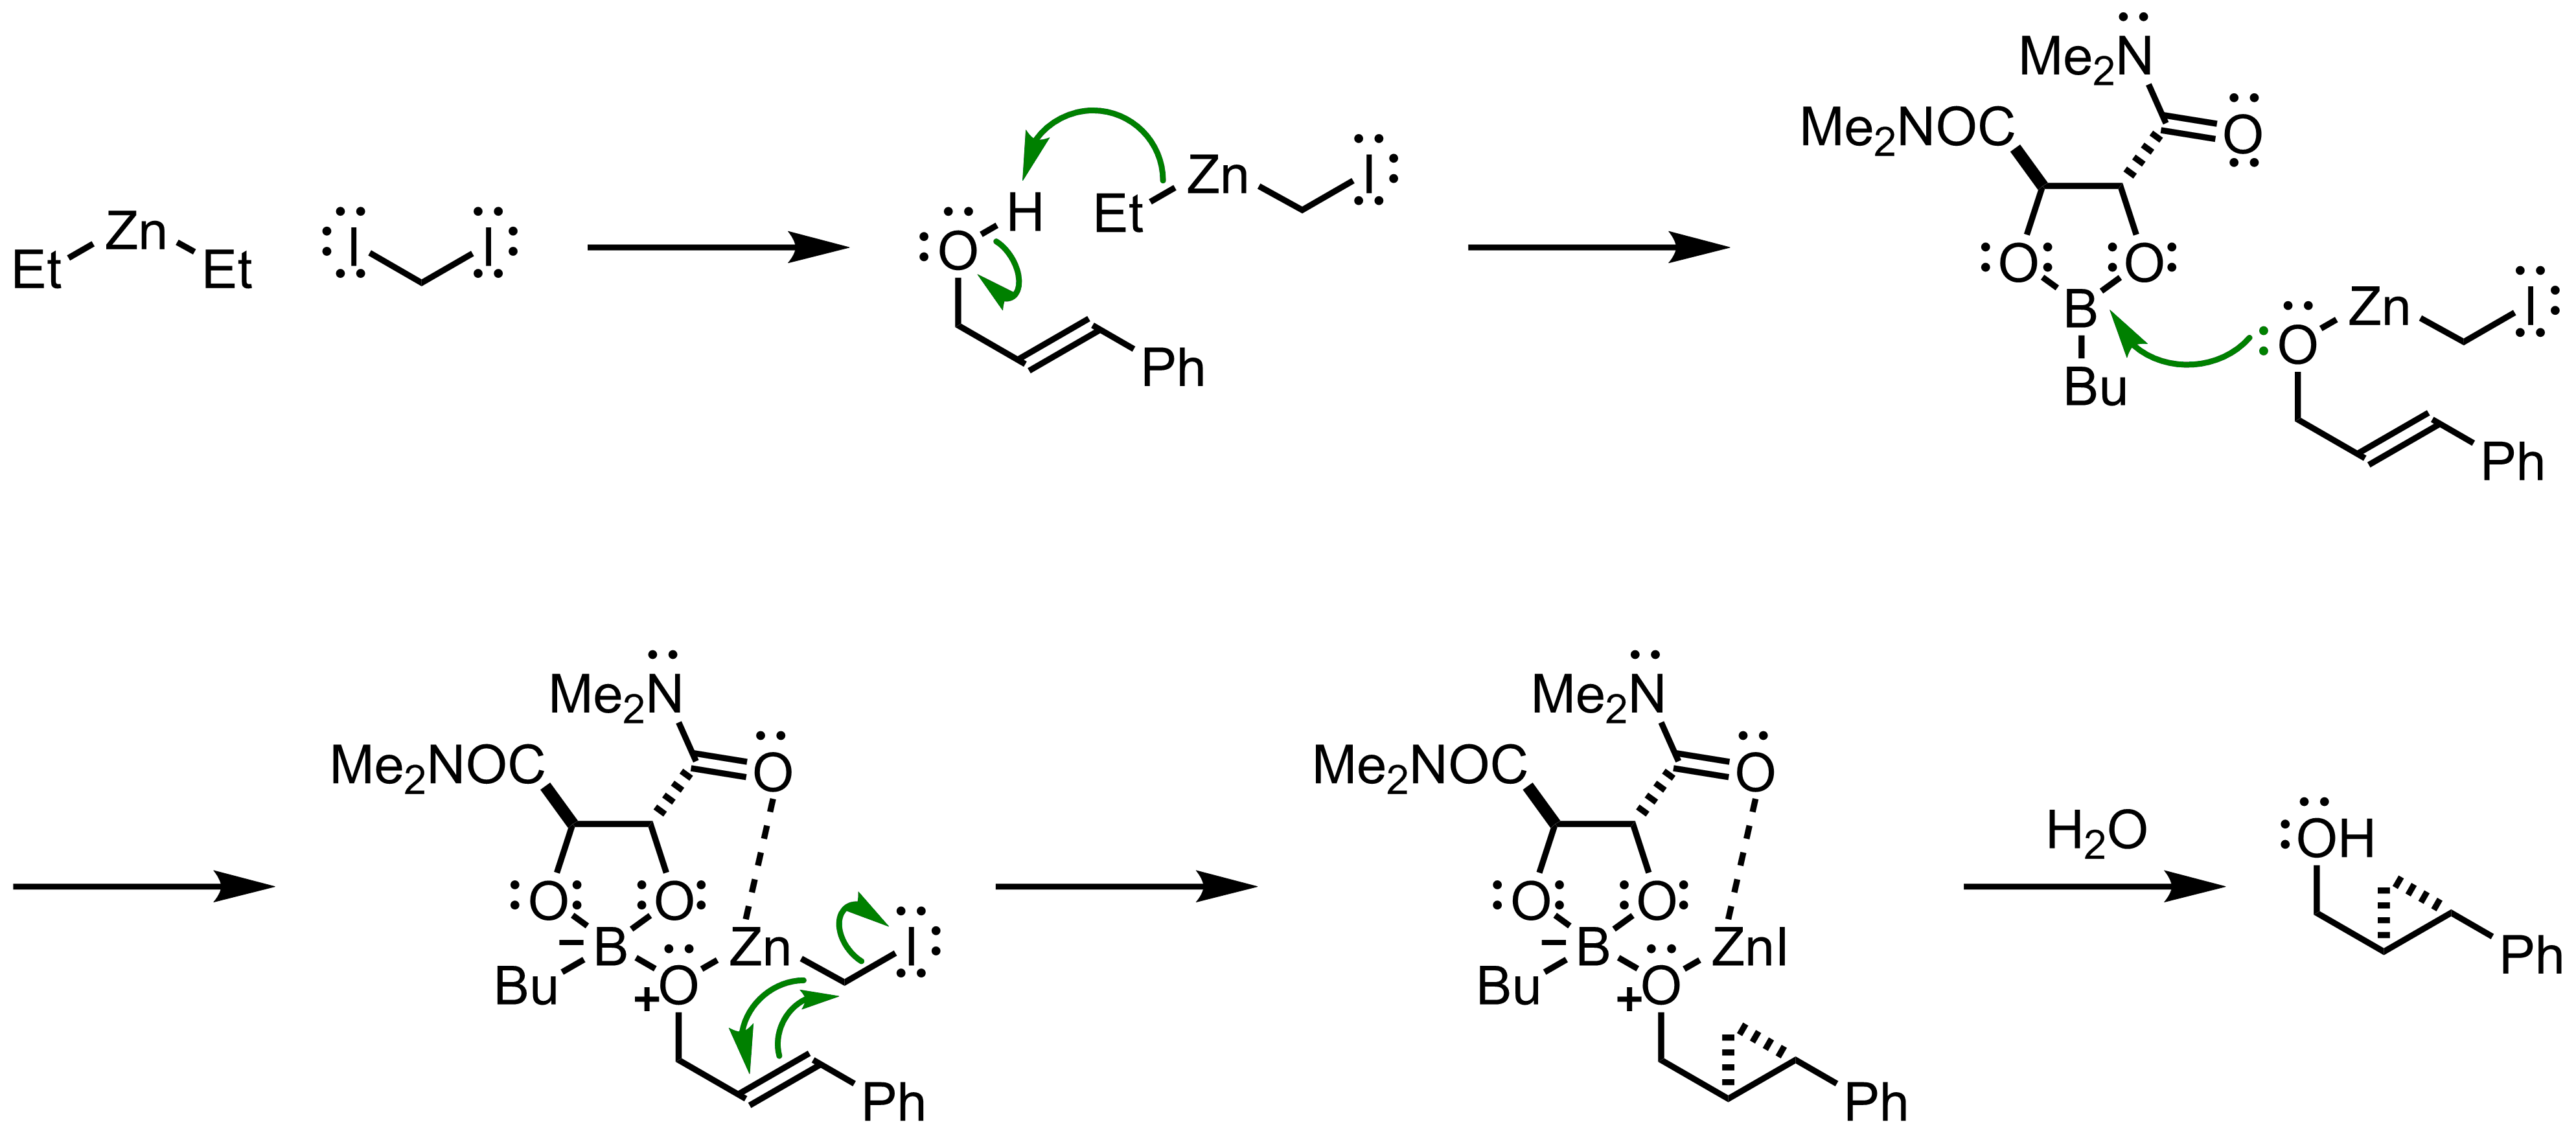 Mechanism of the Charette Asymmetric Cyclopropanation